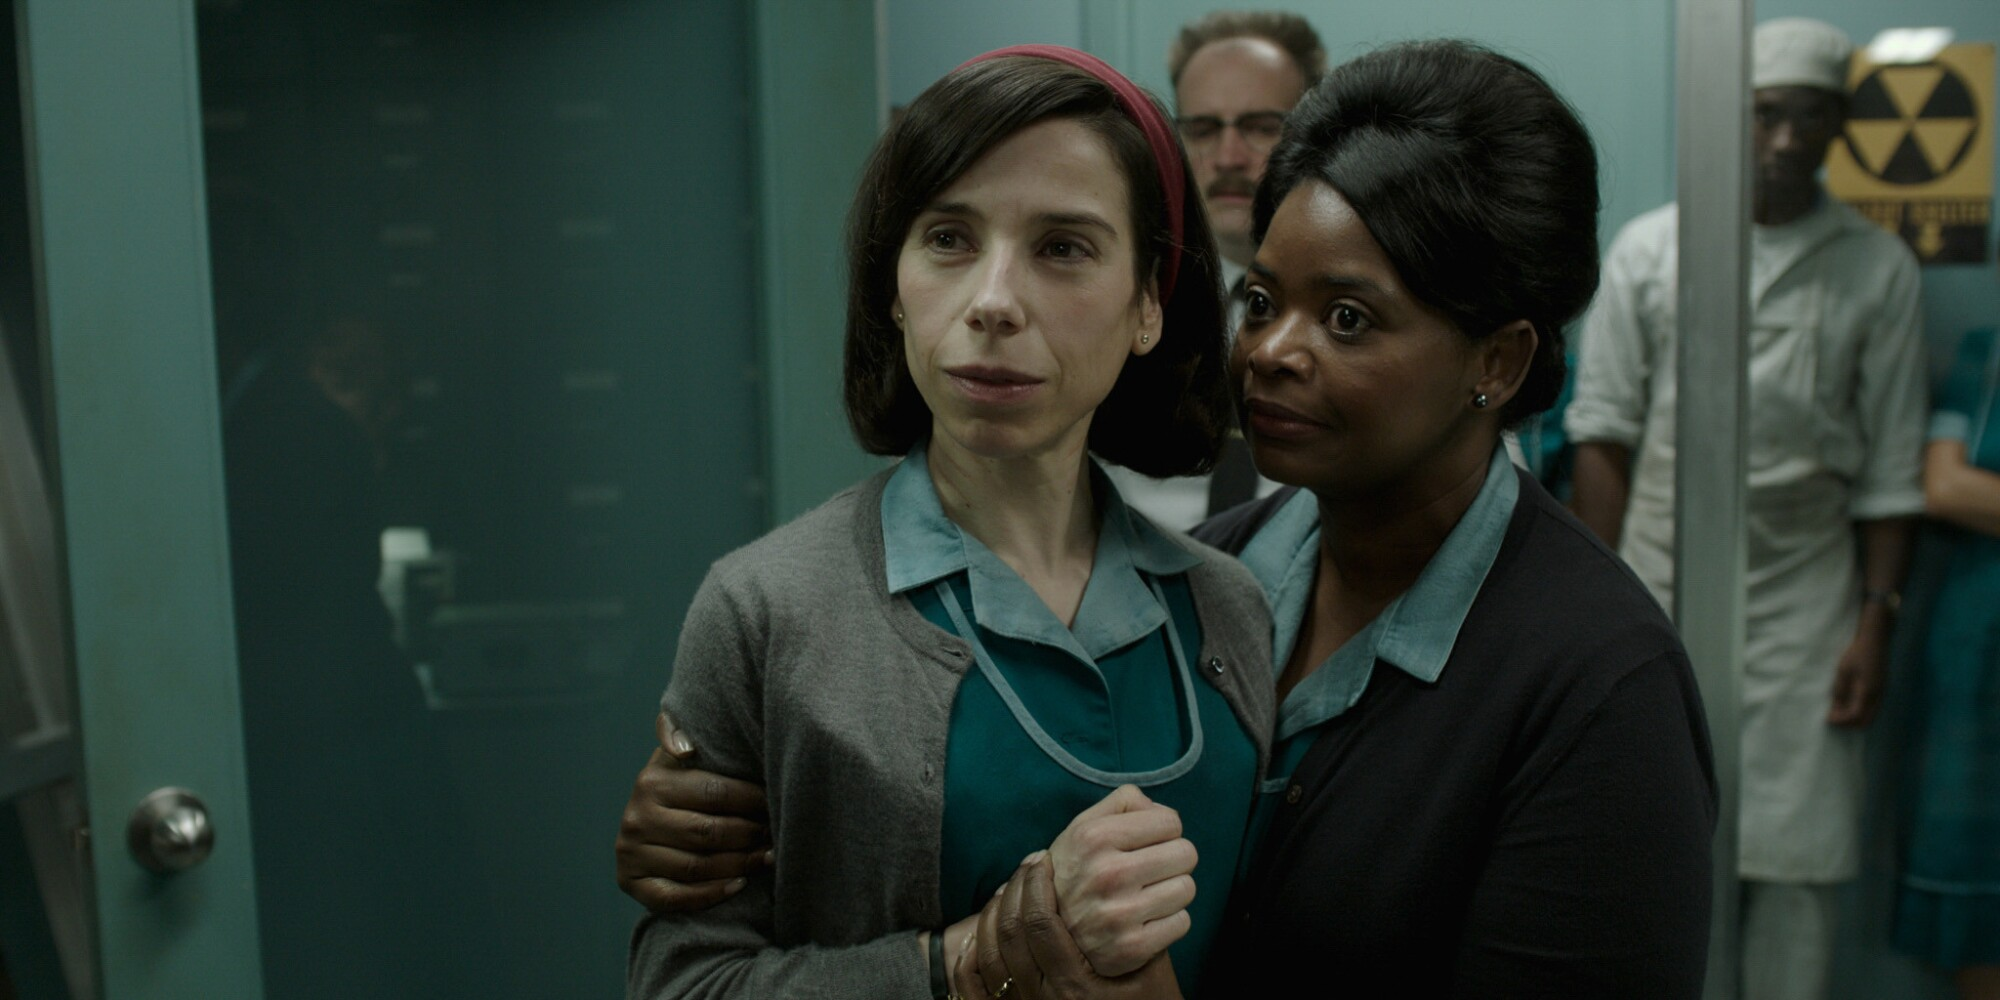 Oscar nominations 2018: 'The Shape of Water' gets 13 nominations, James Franco gets none